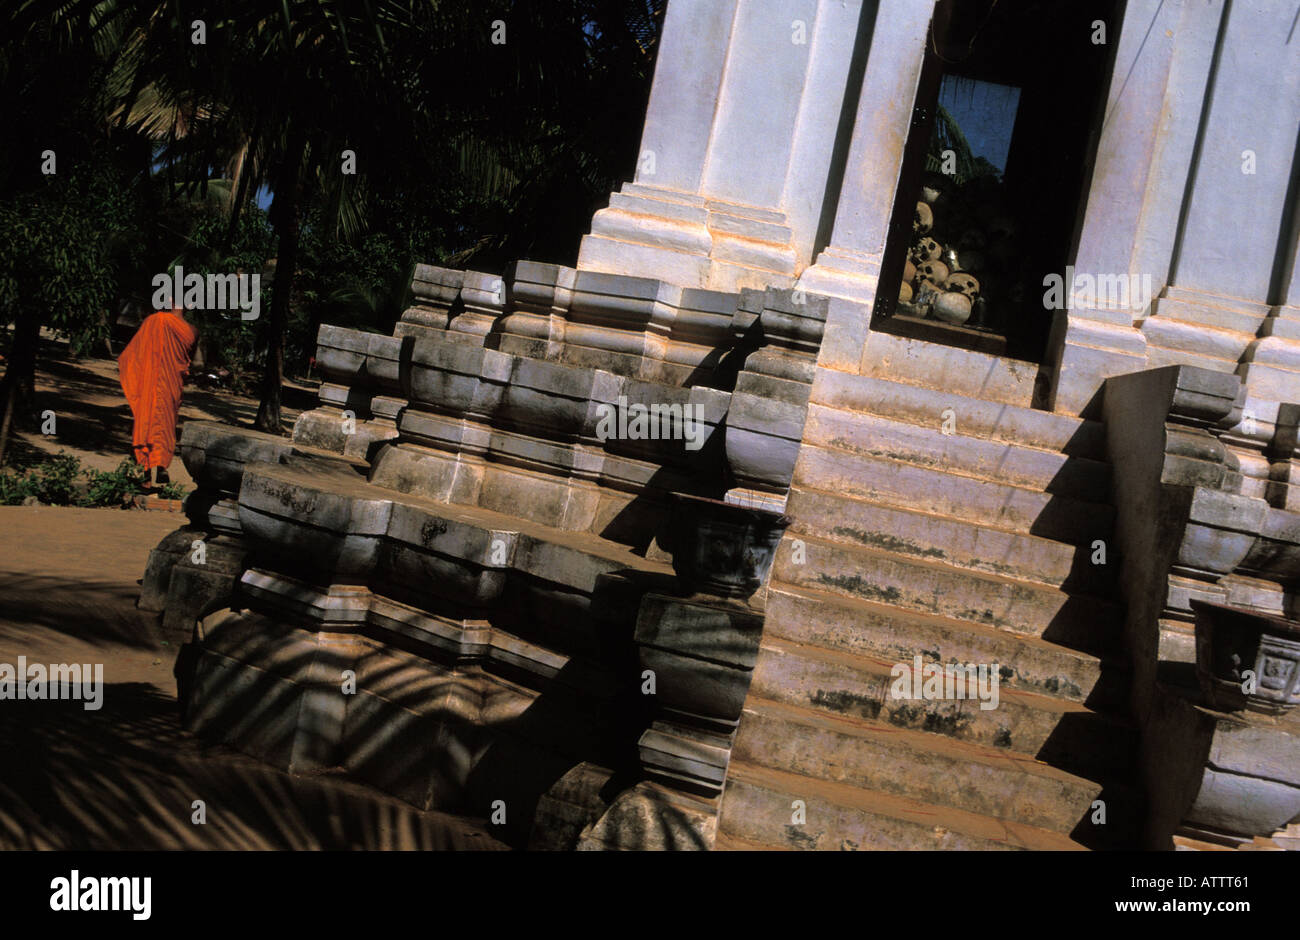 Siem Reap victims of the Pol Pot regime - Stock Image